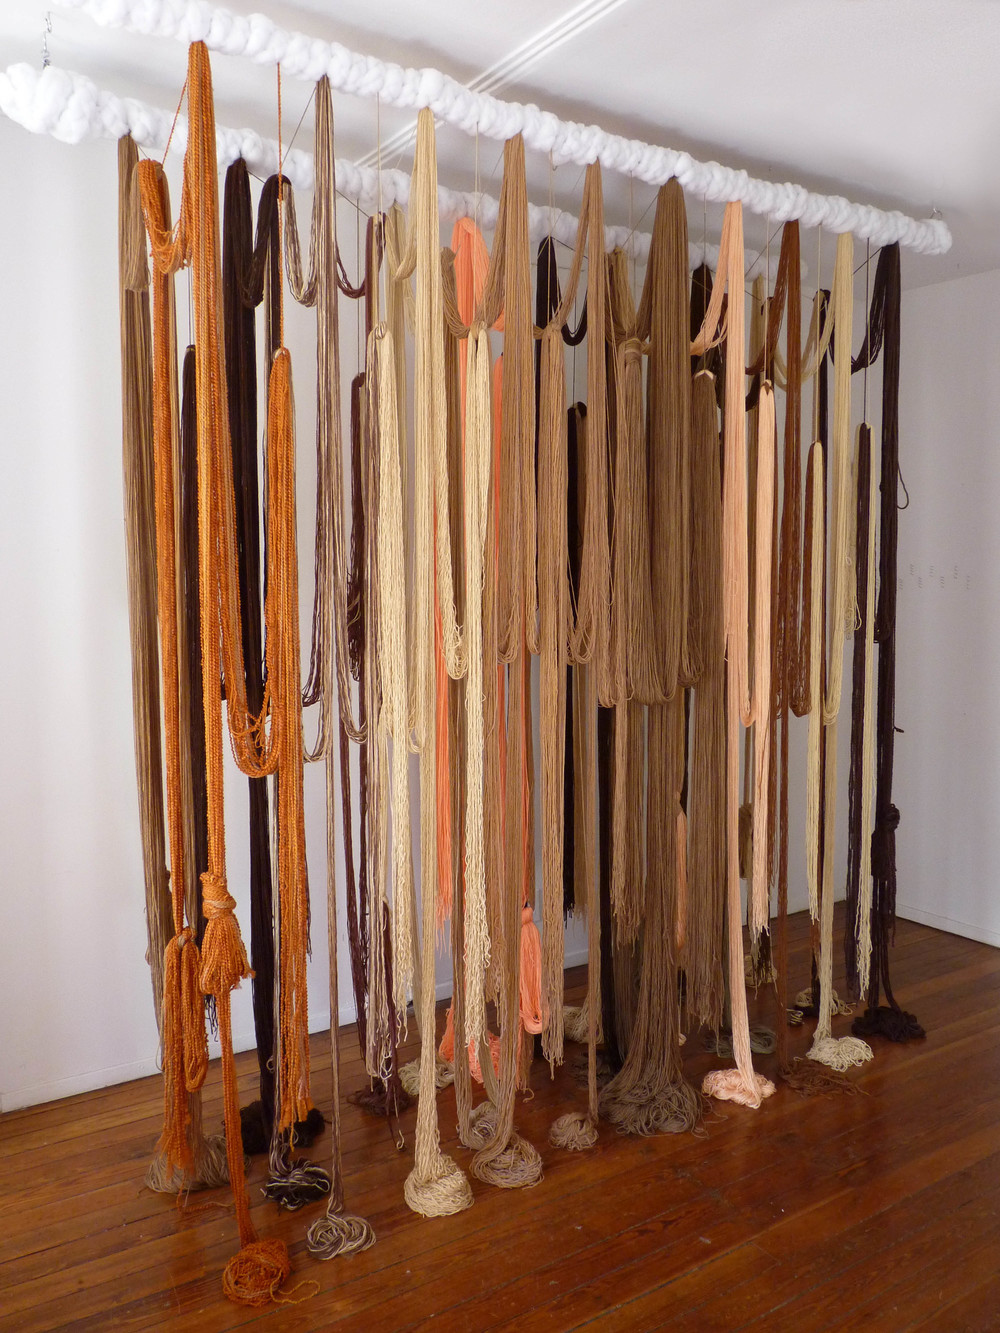 A Valence, 2012, Yarn, wood, poly-fil and hardware, 10 x 2 x 10 feet (Studio view)